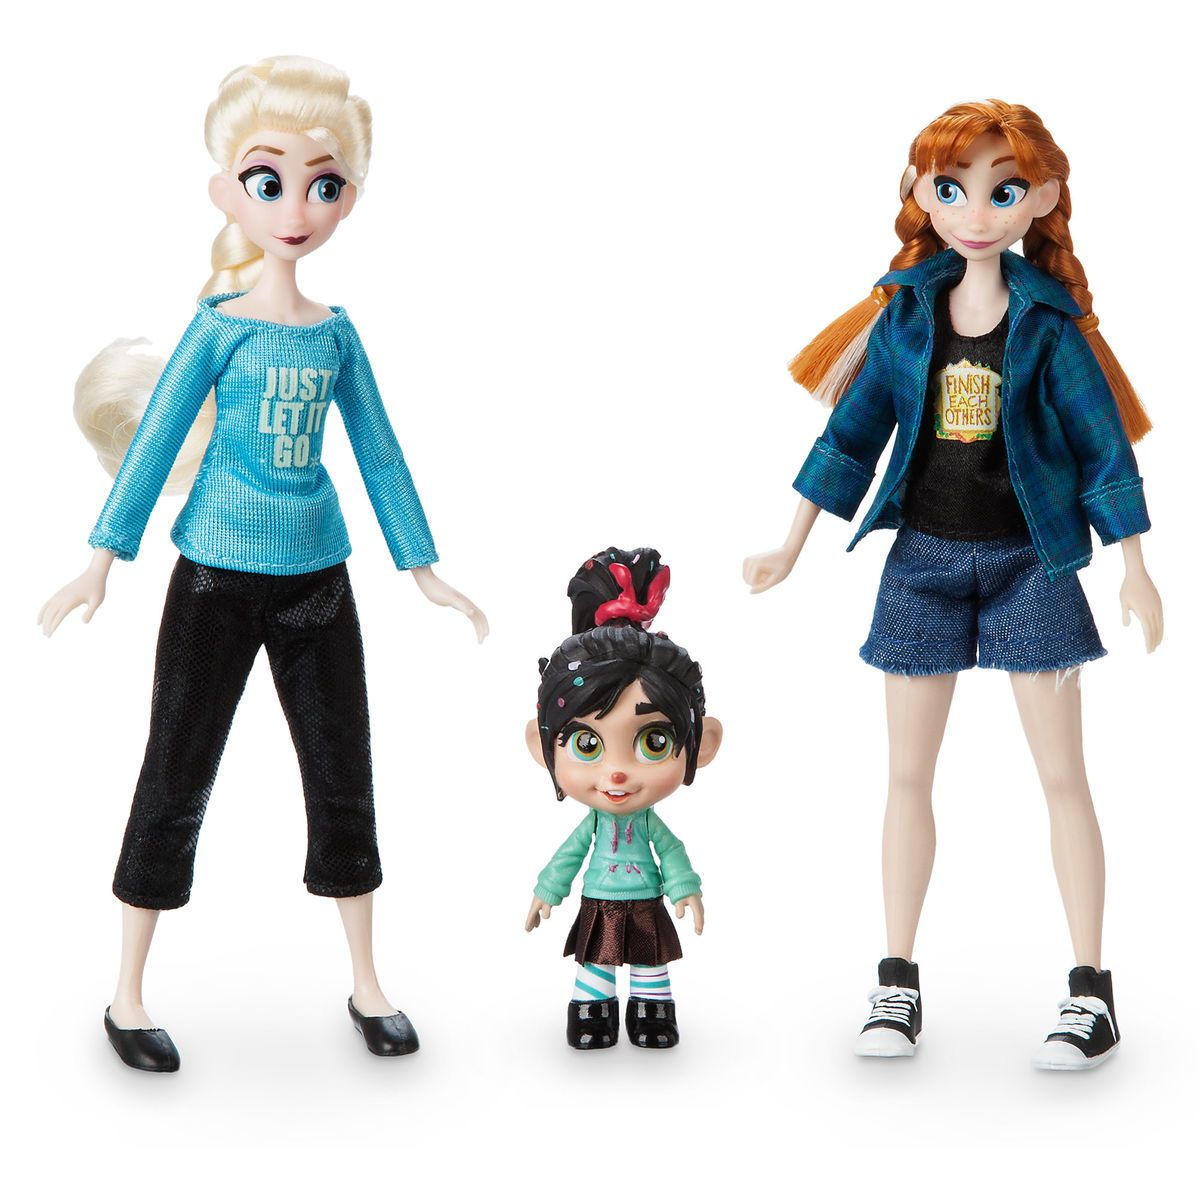 Vanellope With Anna And Elsa Mini Doll Set Ralph Breaks The Internet Disney Princess Dolls American Girl Doll Movies Disney Princess Art